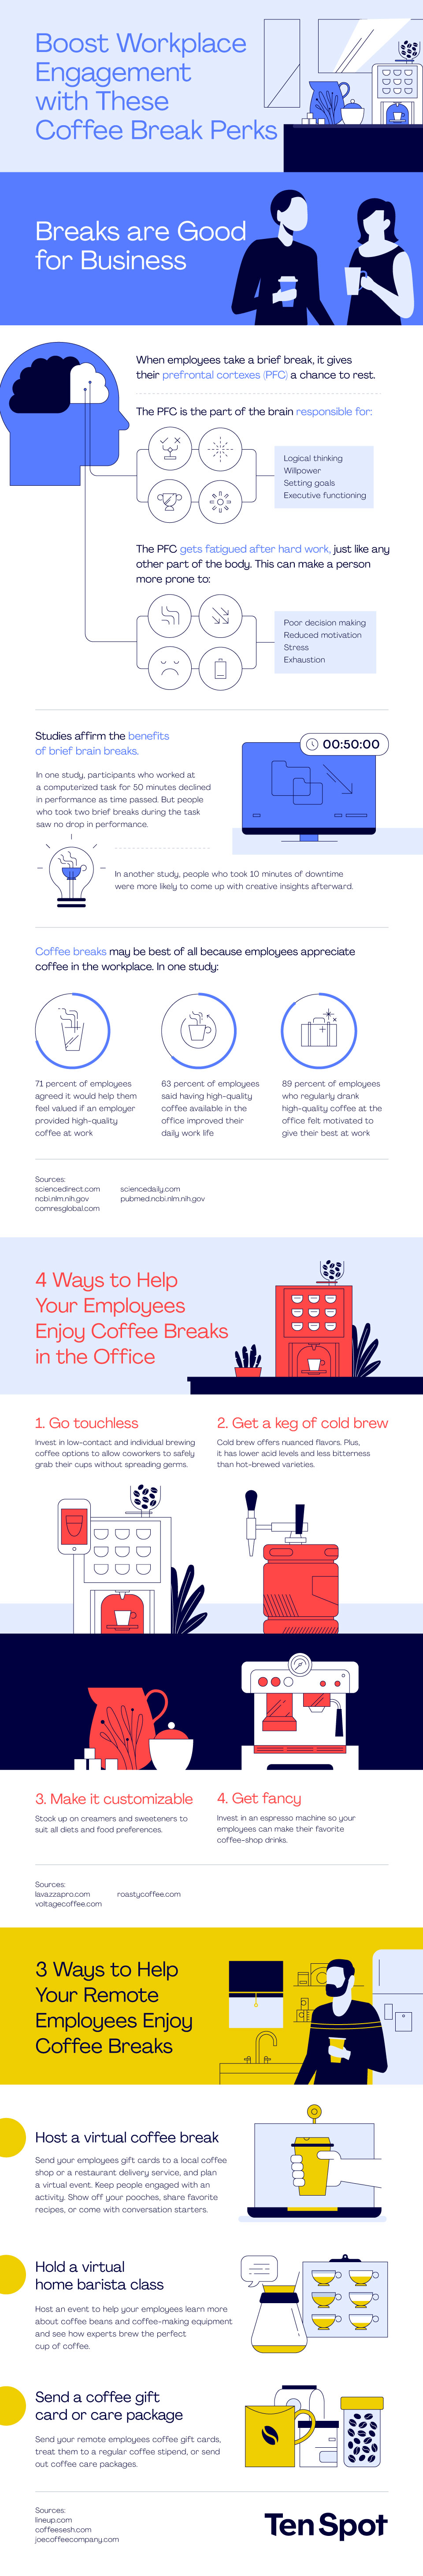 Boost Workplace Engagement with These Coffee Break Perks